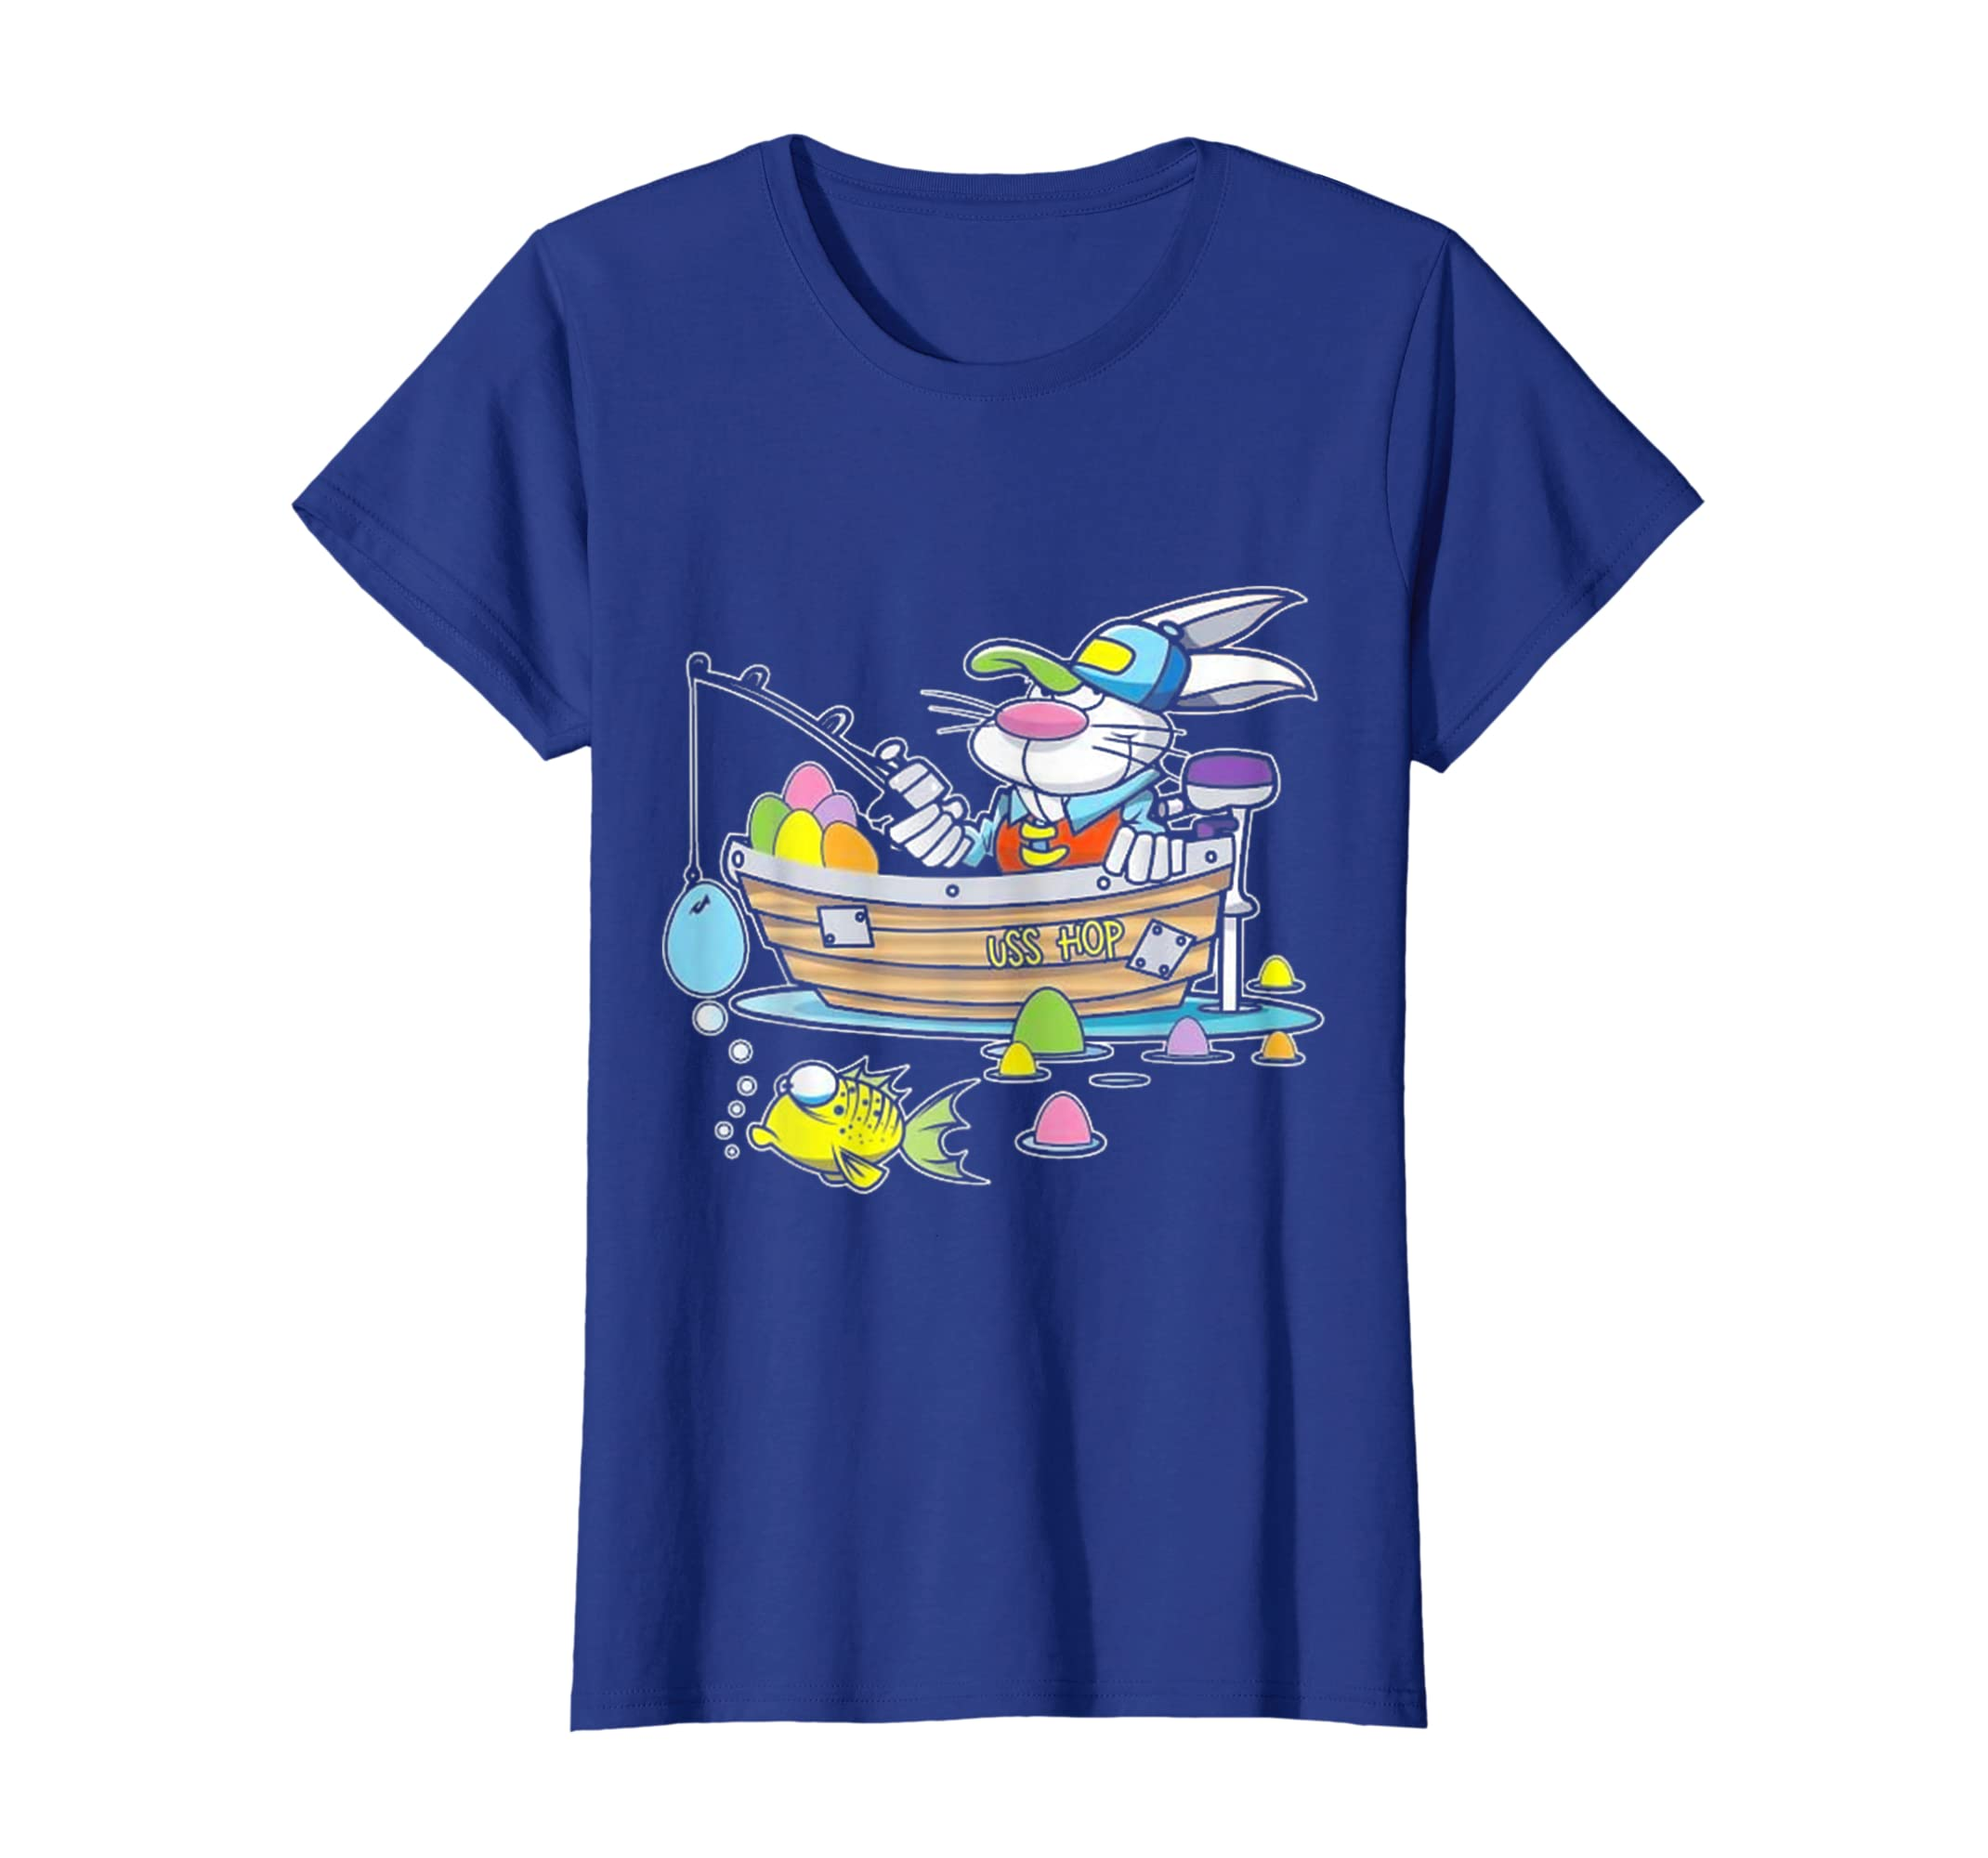 432d8004 Amazon.com: Fun Easter Shirt for Boys Men Dad Fishing Gift for Egg Hunt:  Clothing